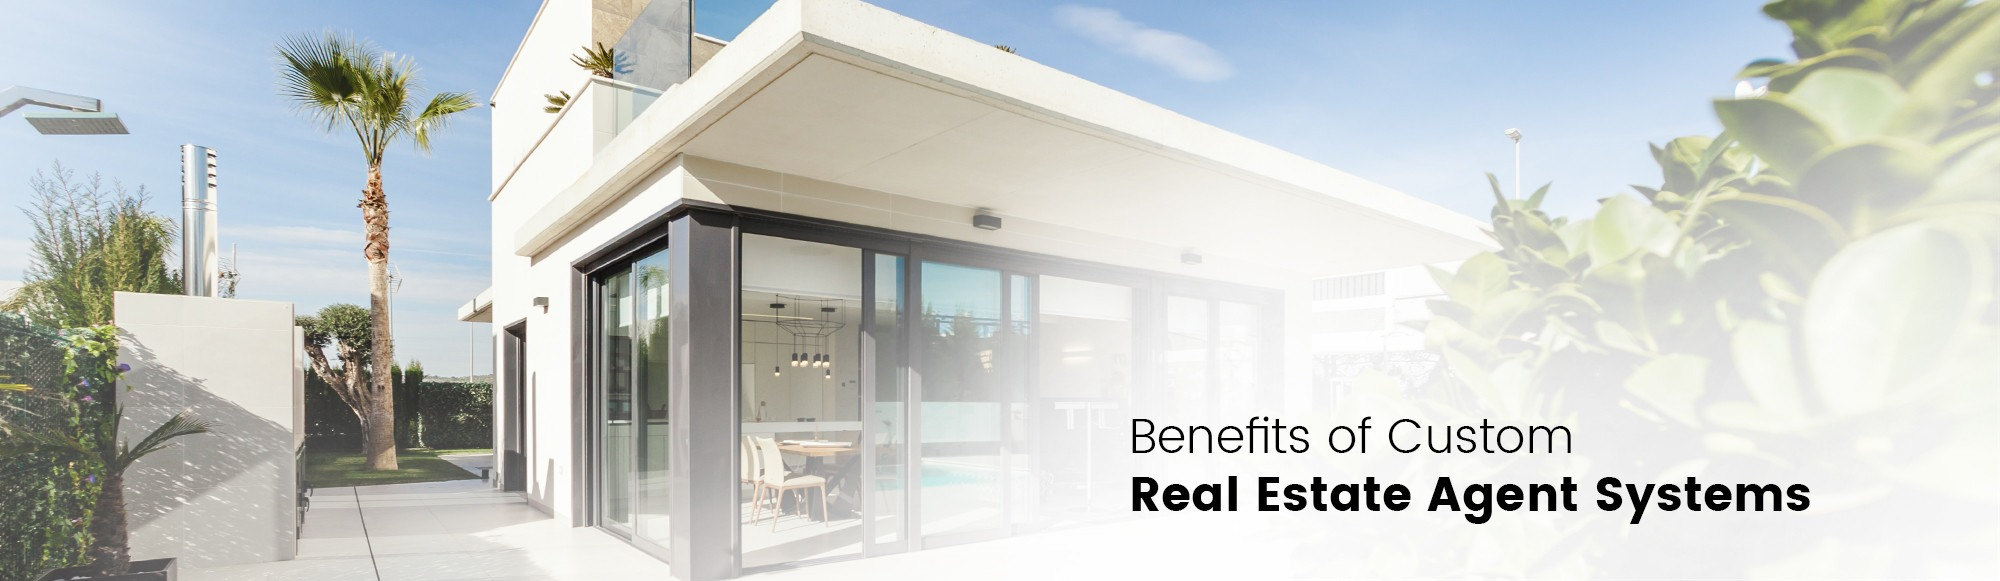 Benefits of Custom Real Estate Agent Systems